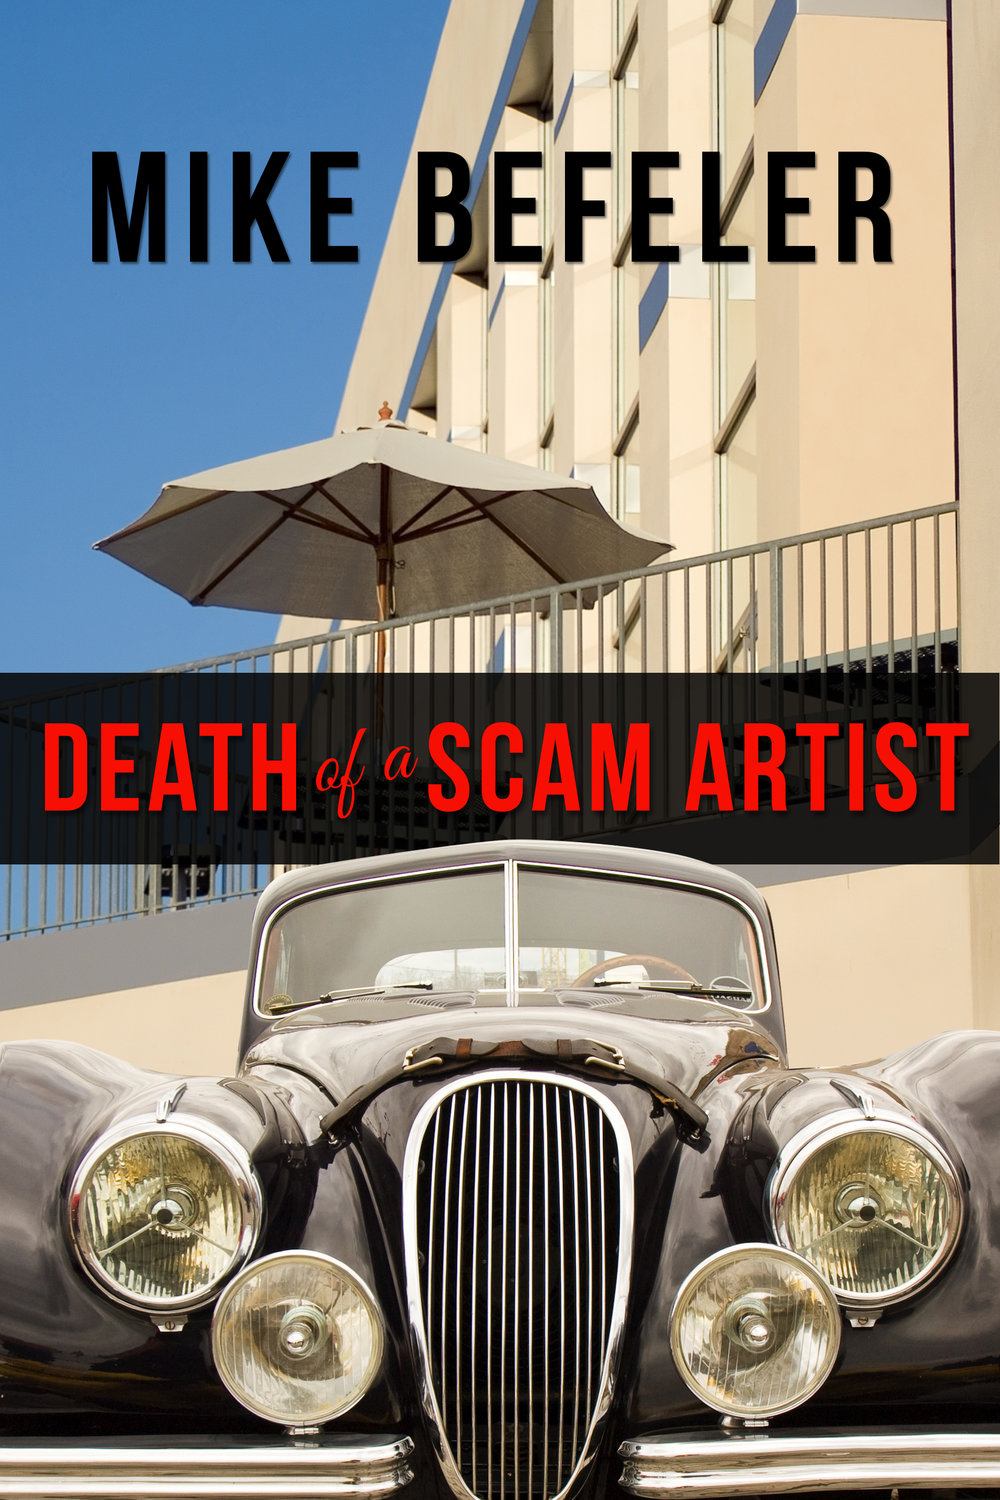 In Death of a Scam Artist, a financial hatchet man who dislikes old people, accepts the job of turning around a failing retirement home and undergoes a life-transforming experience in the world of geezers and geezerettes. He must deal with a suspicious death, a scam, a hit man, an unexpected romance and retired magician Jerry Rhine and his five whacky sidekicks known as the Jerry-atrics. He faces the most important decision of his life when he uncovers the secret behind an unusual murder. Death of a Scam Artist is a new mystery following six books in the Paul Jacobson geezer-lit mystery series, includingRetirement Homes Are Murder; Living With Your Kids Is Murder, a finalist for the 2009 Lefty Award for best humorous mystery; Senior Moments Are Murder; Cruising in Your Eighties Is Murder, a finalist for the 2012 Lefty Award for best humorous mystery of 2012; Care Homes Are Murder; and Nursing Homes Are Murder. Mike also has five published standalone mystery novels, Court Trouble: A Platform Tennis Mystery, The V V Agency, The Back Wing, Mystery of the Dinner Playhouse and Murder on the Switzerland Trail, in addition to an international thriller, The Tesla Legacy, and a non-fiction book For Liberty: A World War II Soldier's Inspiring Life Story of Courage, Sacrifice, Survival and Resilience.